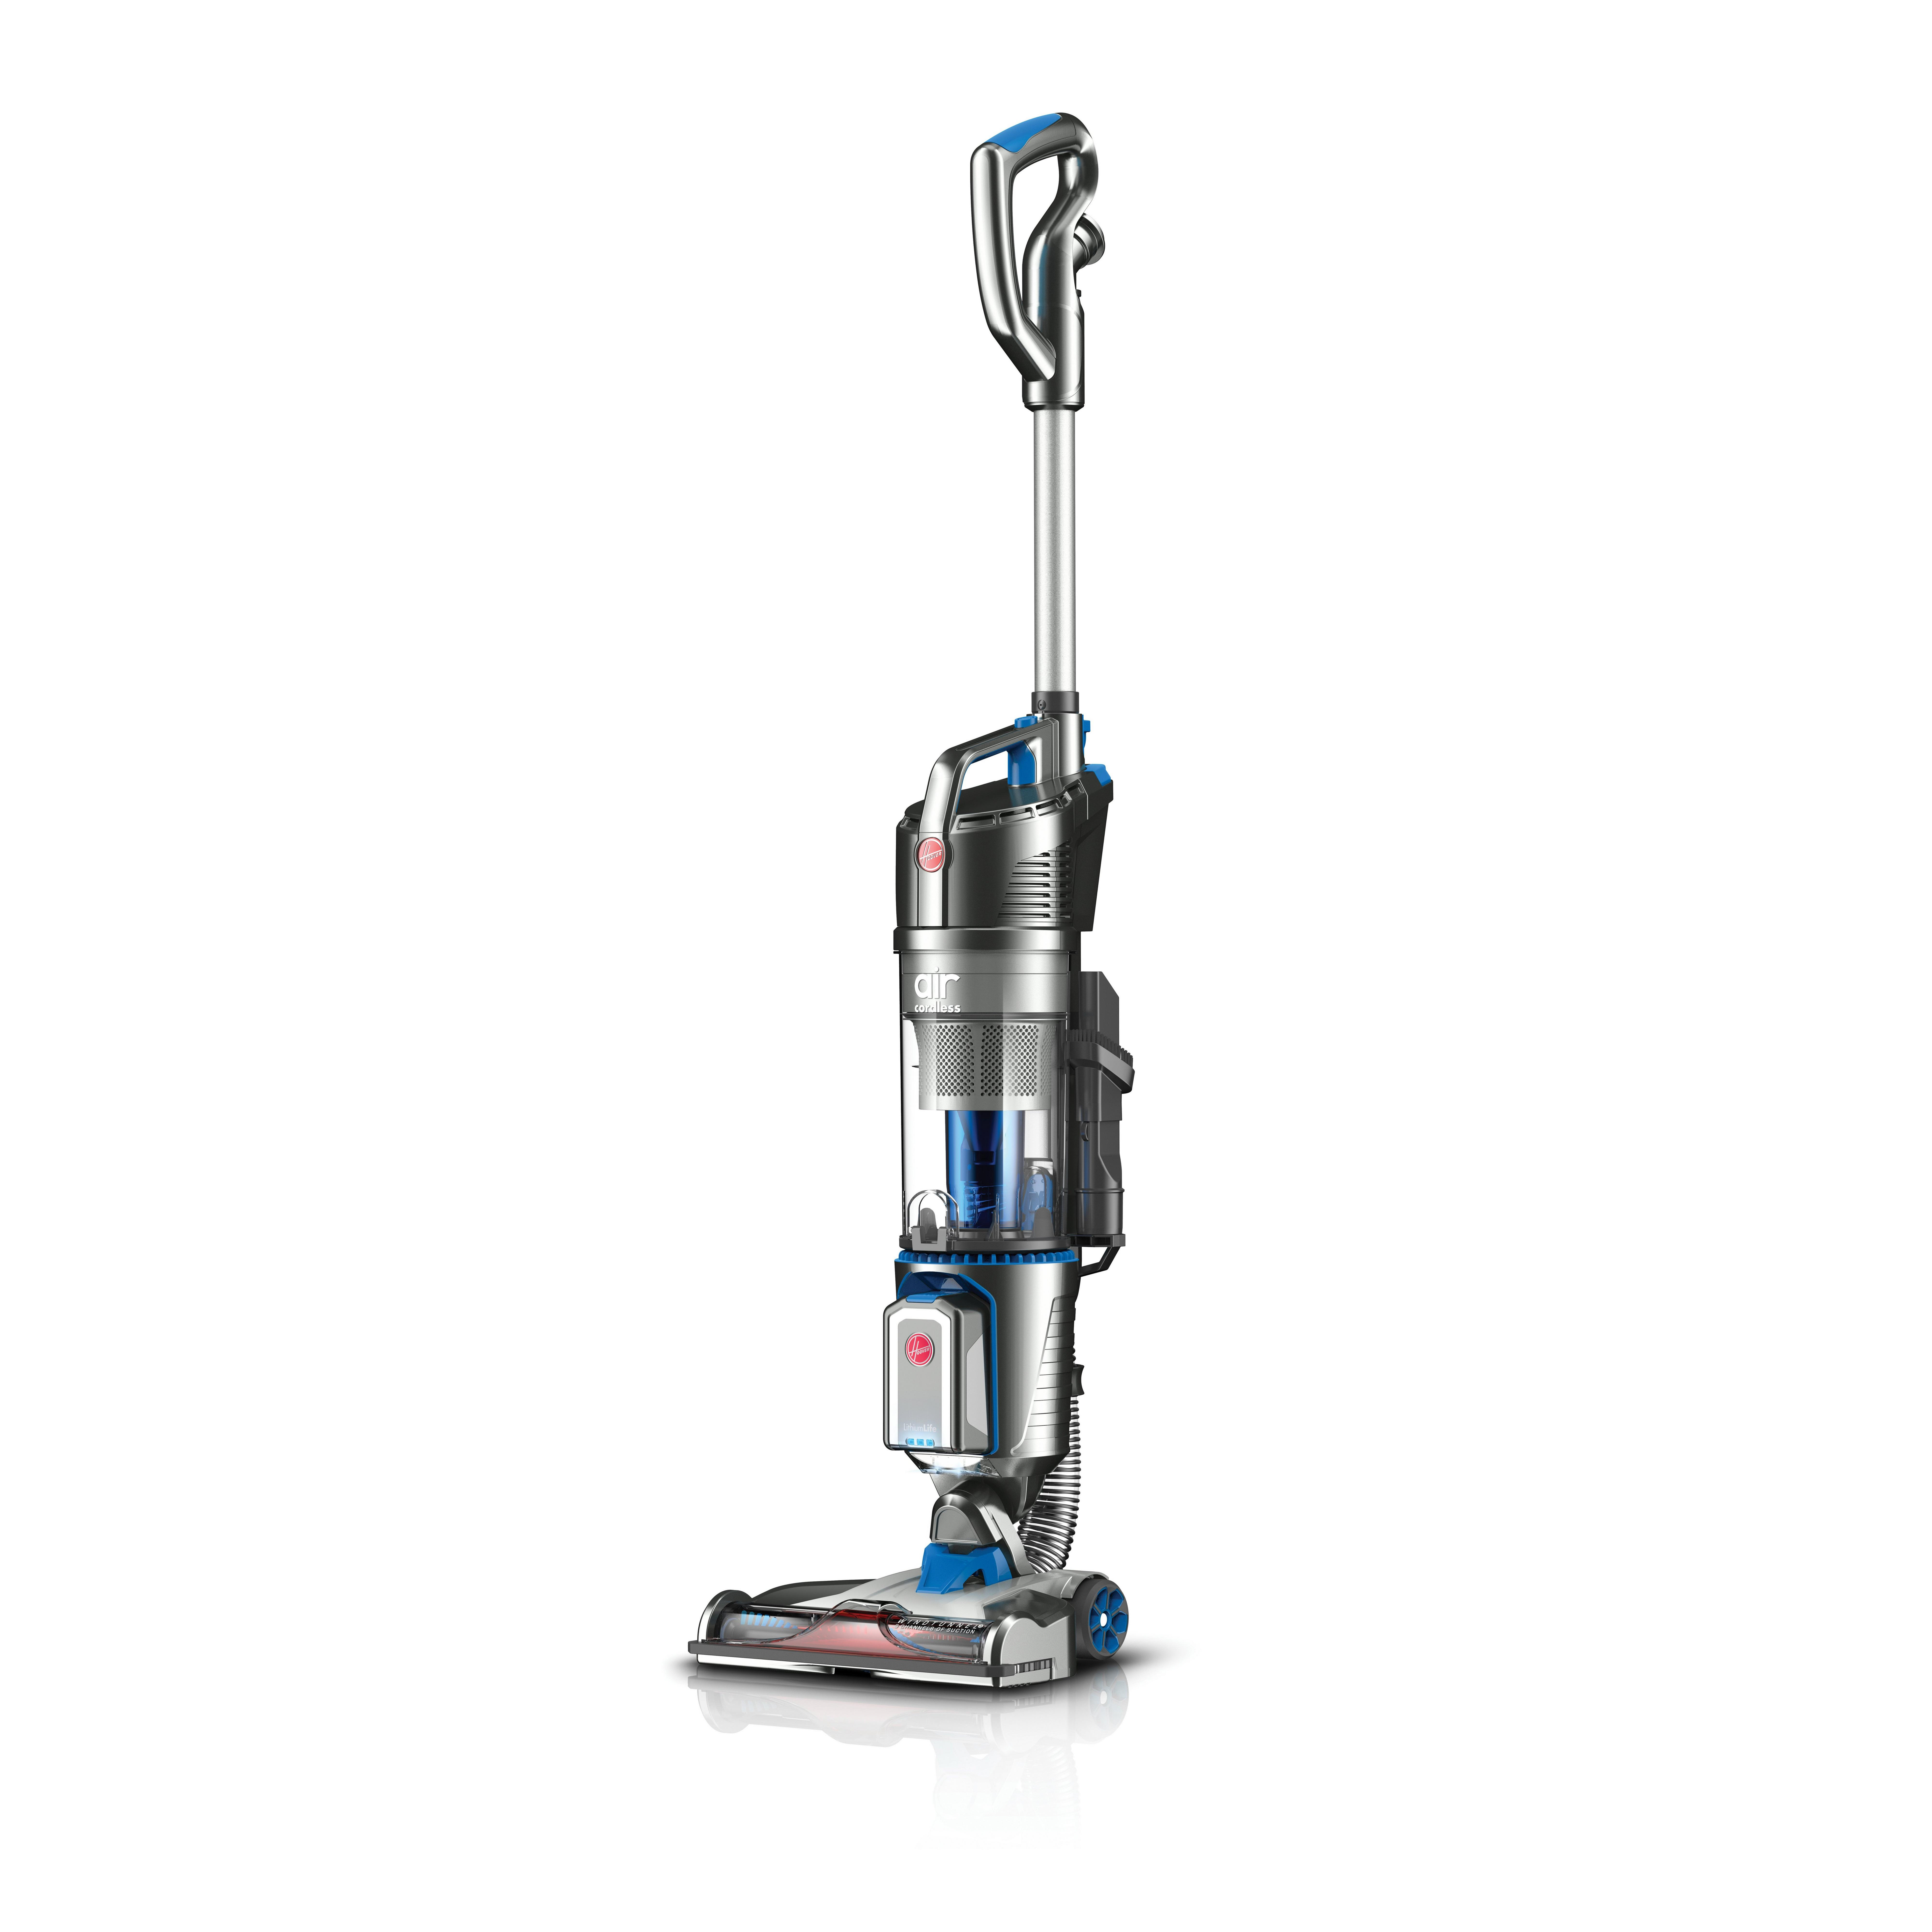 Hoover Cordless Series with Boost Mode Upright Vacuum2